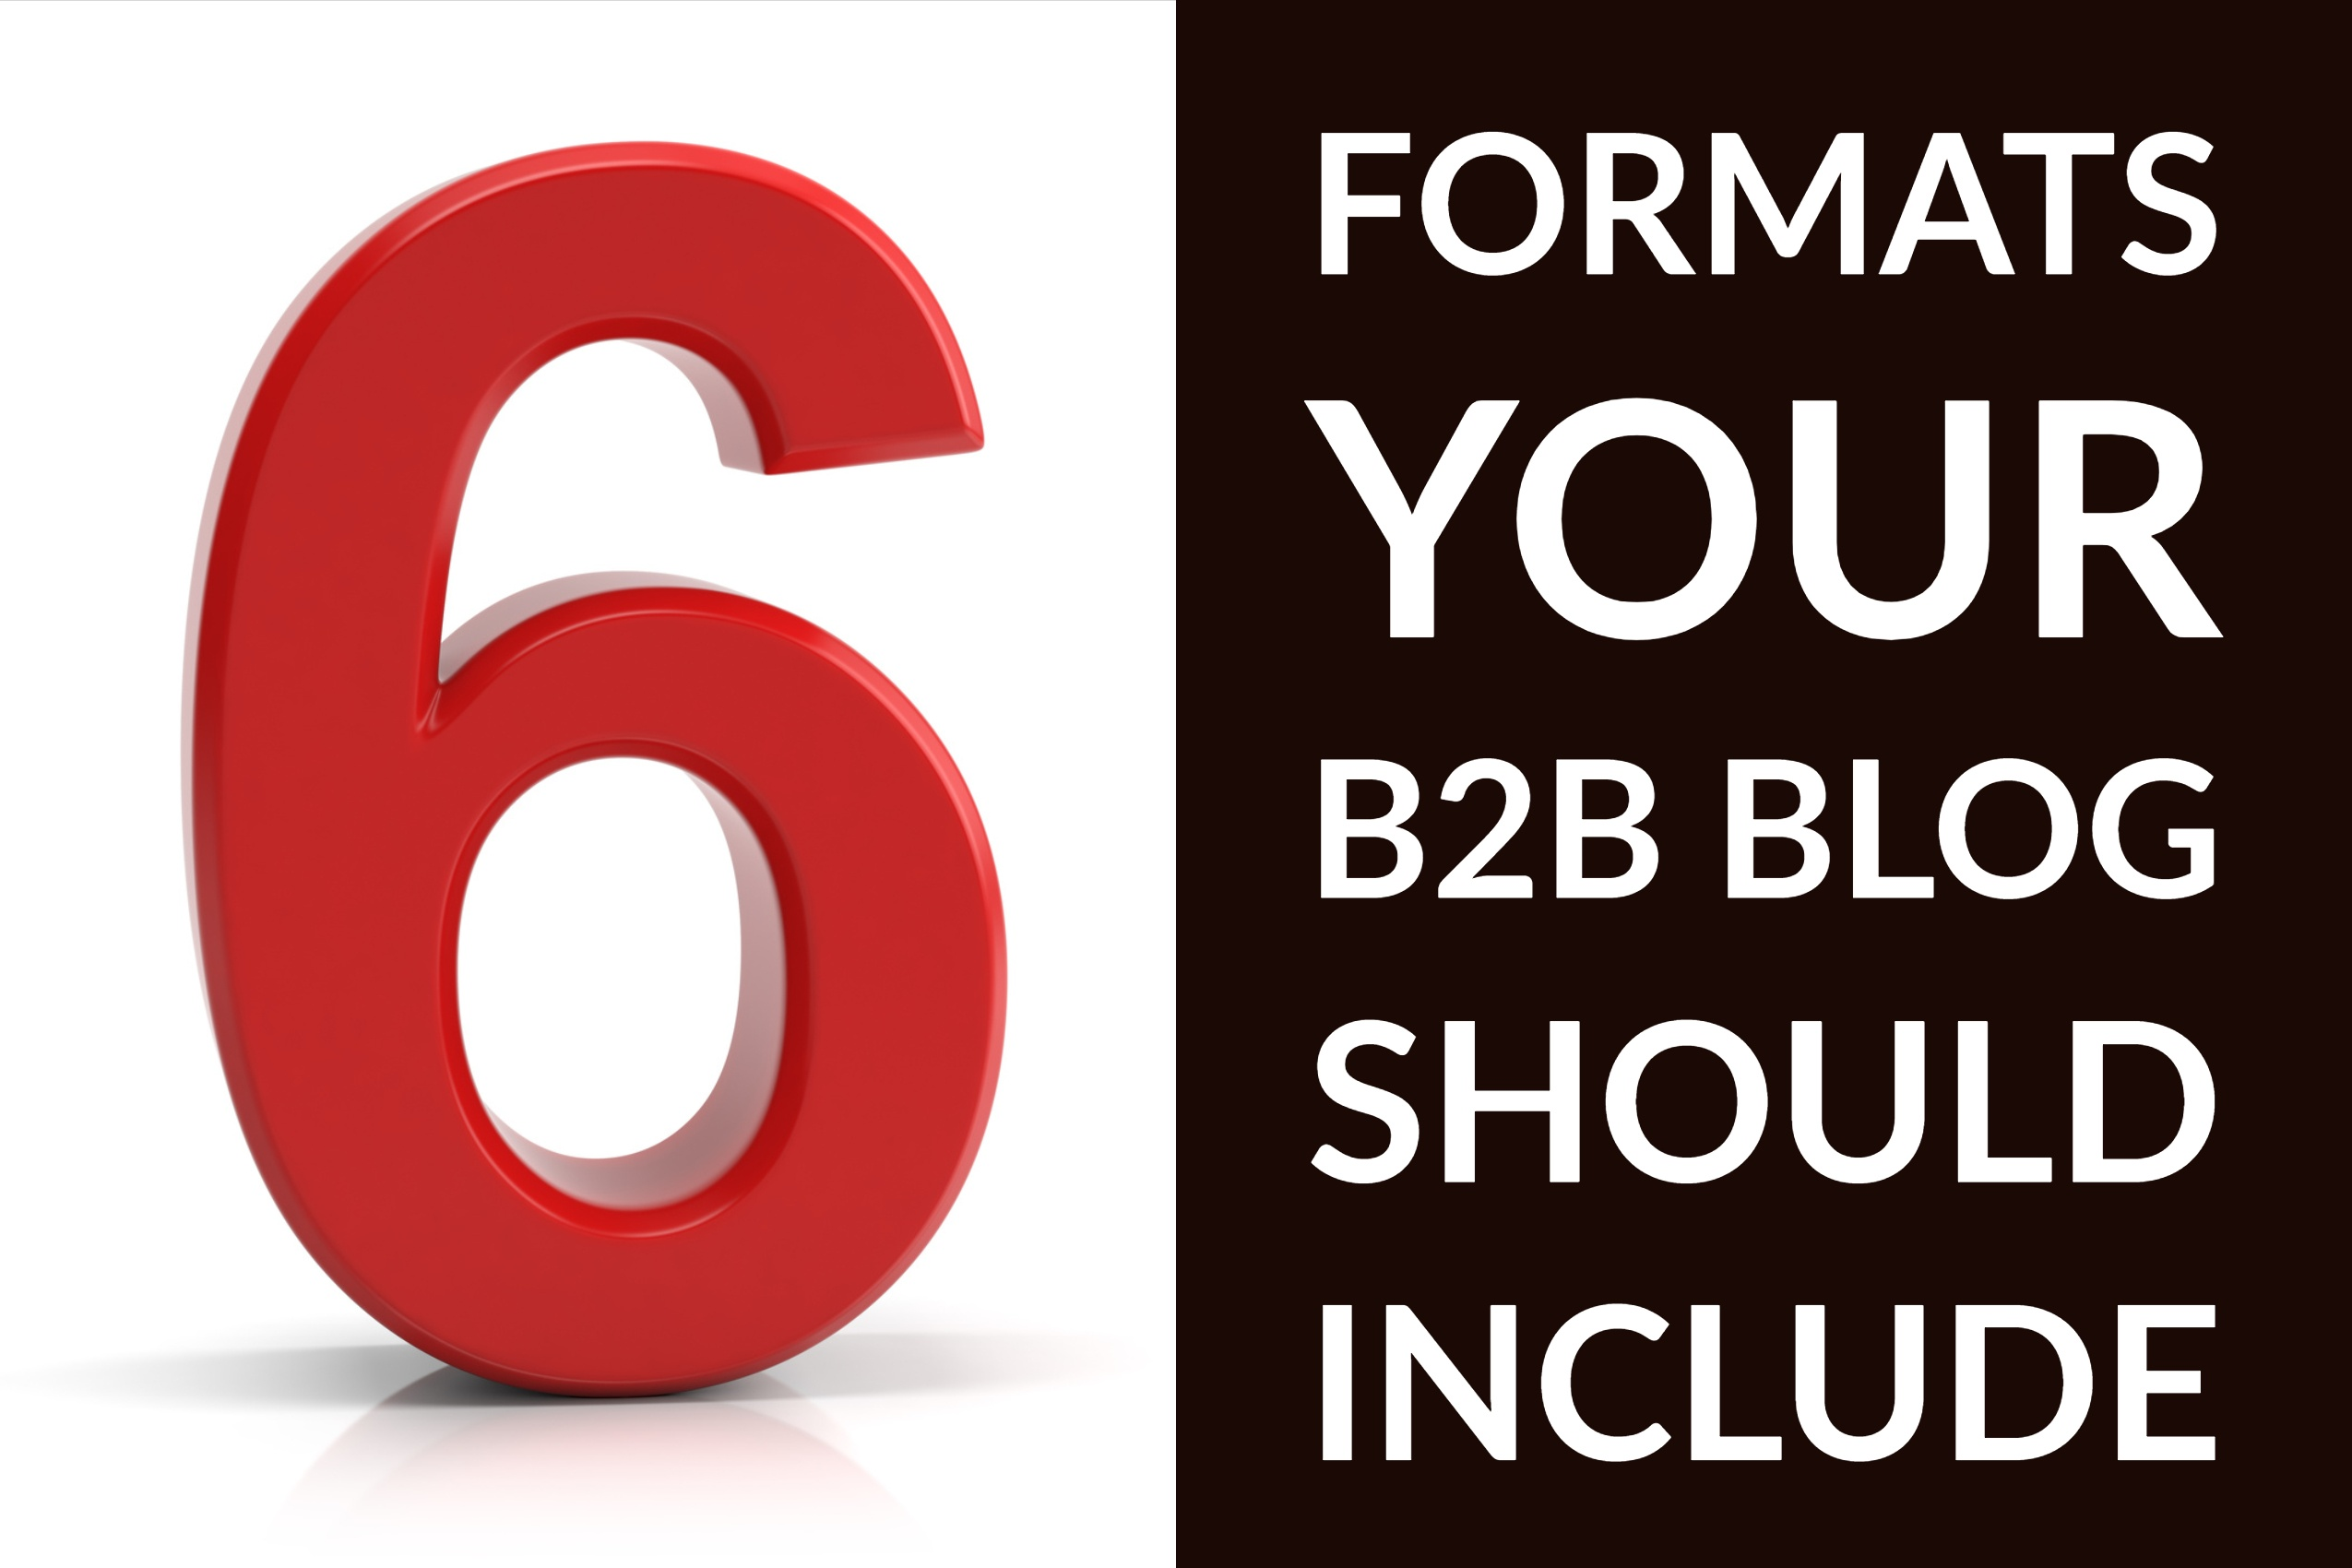 6 Formats Your B2B Blog Should Include